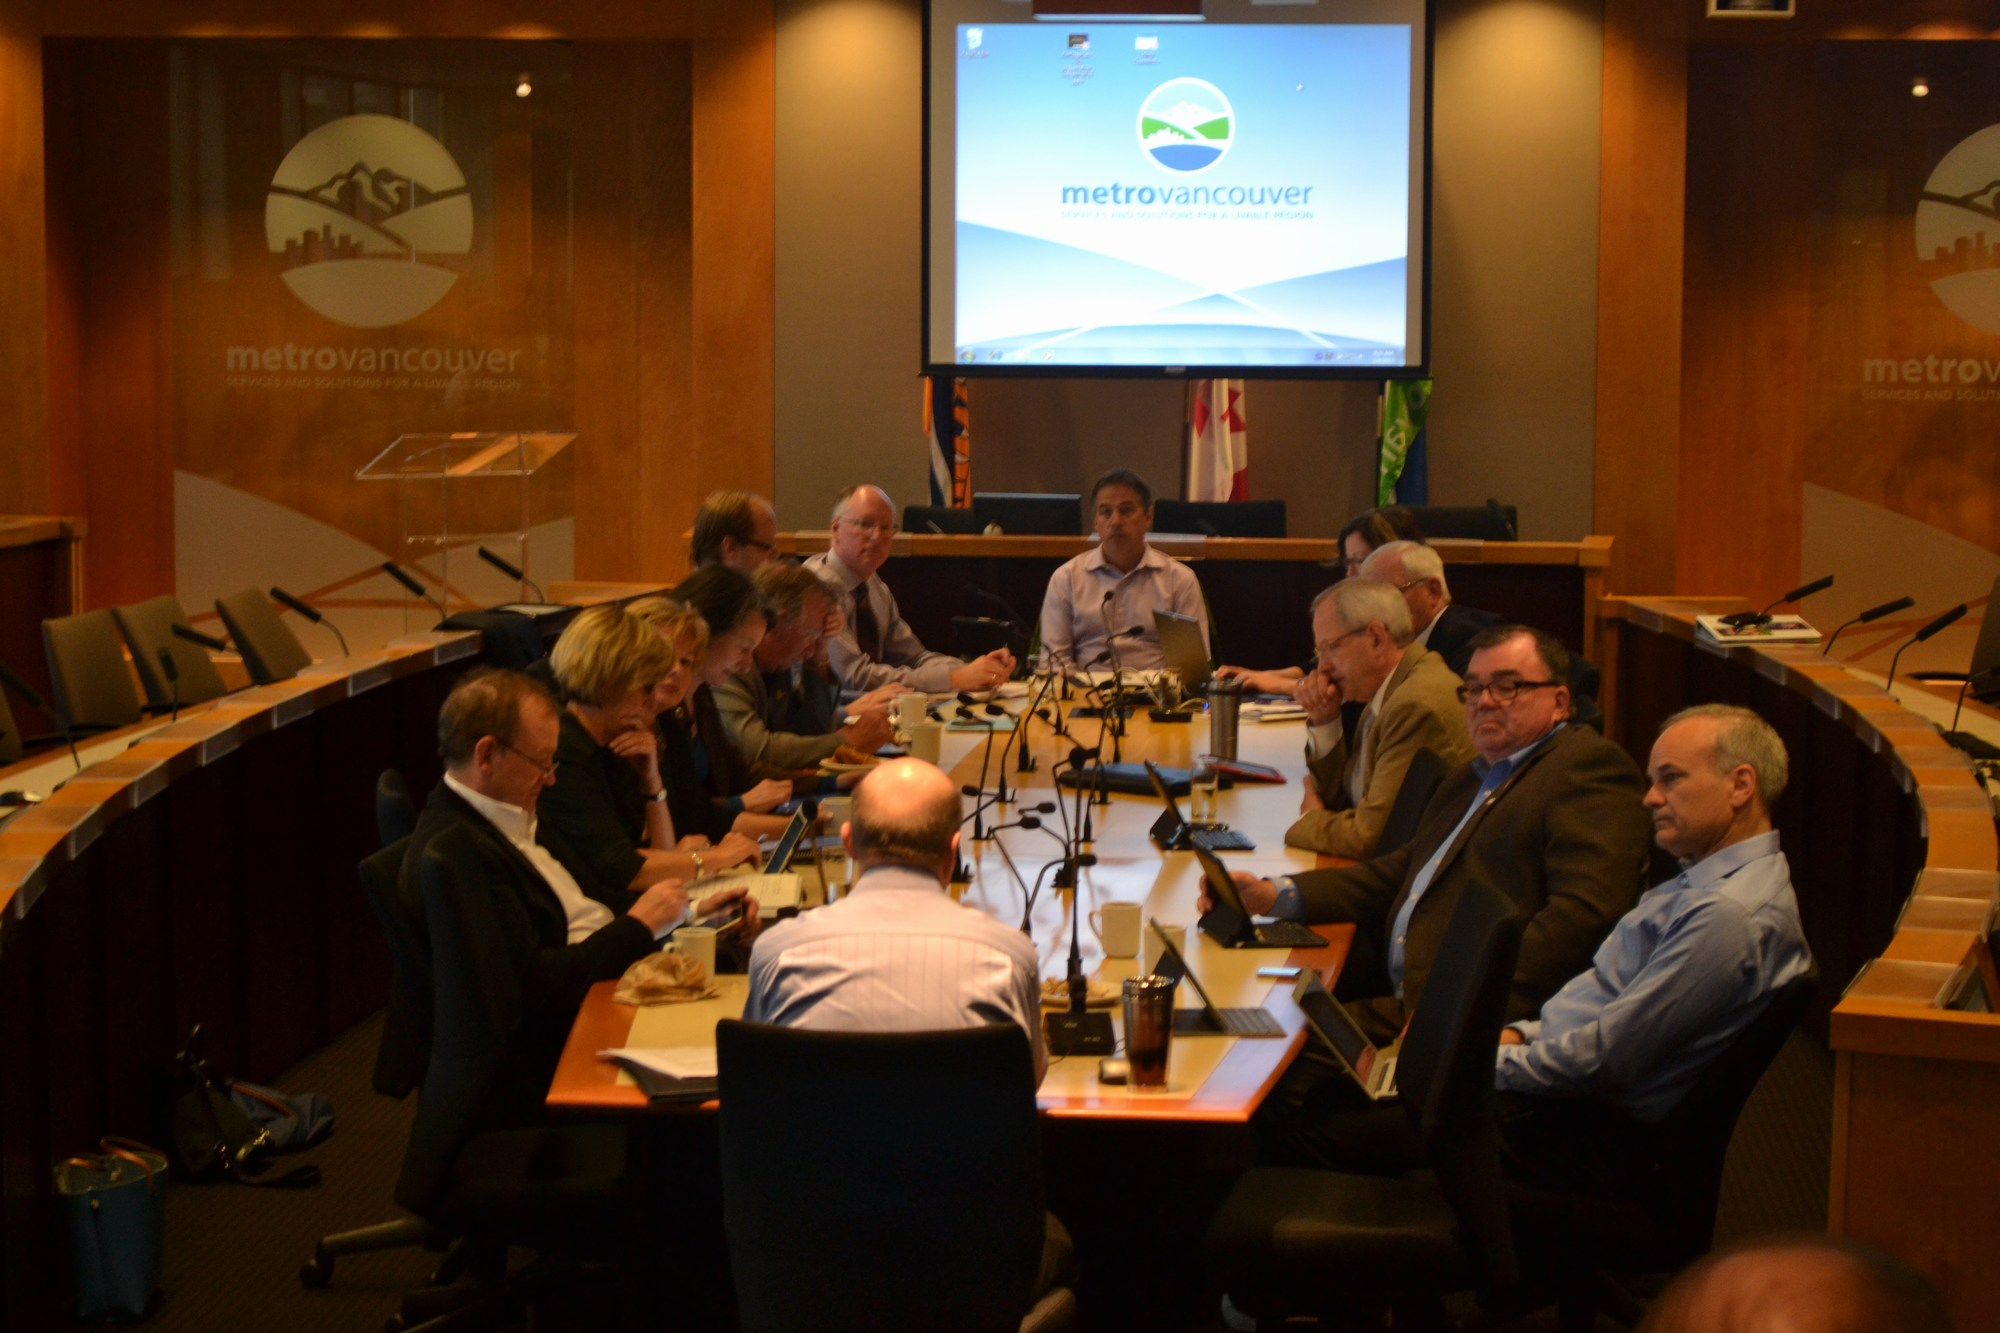 Metro Vancouver Utilities Committee, chaired by Mayor Darrell Mussatto (City of North Vancouver)